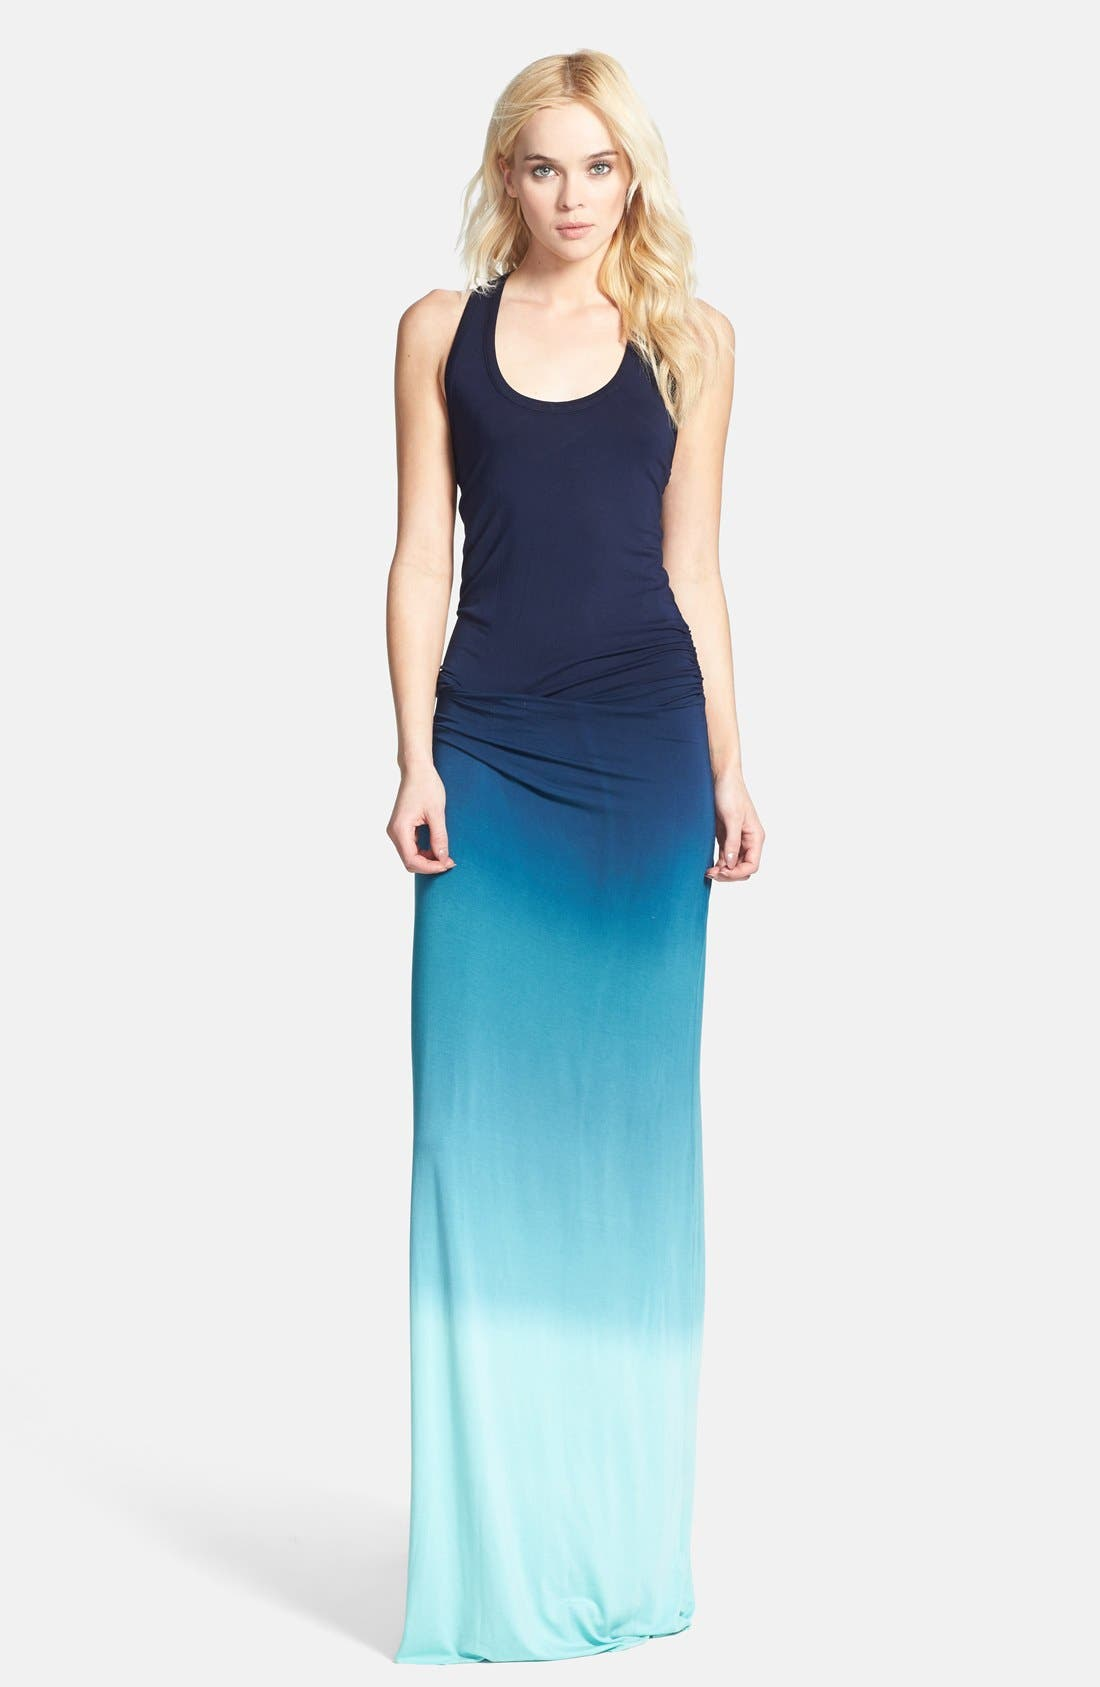 Alternate Image 1 Selected - Young, Fabulous & Broke 'Hamptons' Racerback Jersey Maxi Dress